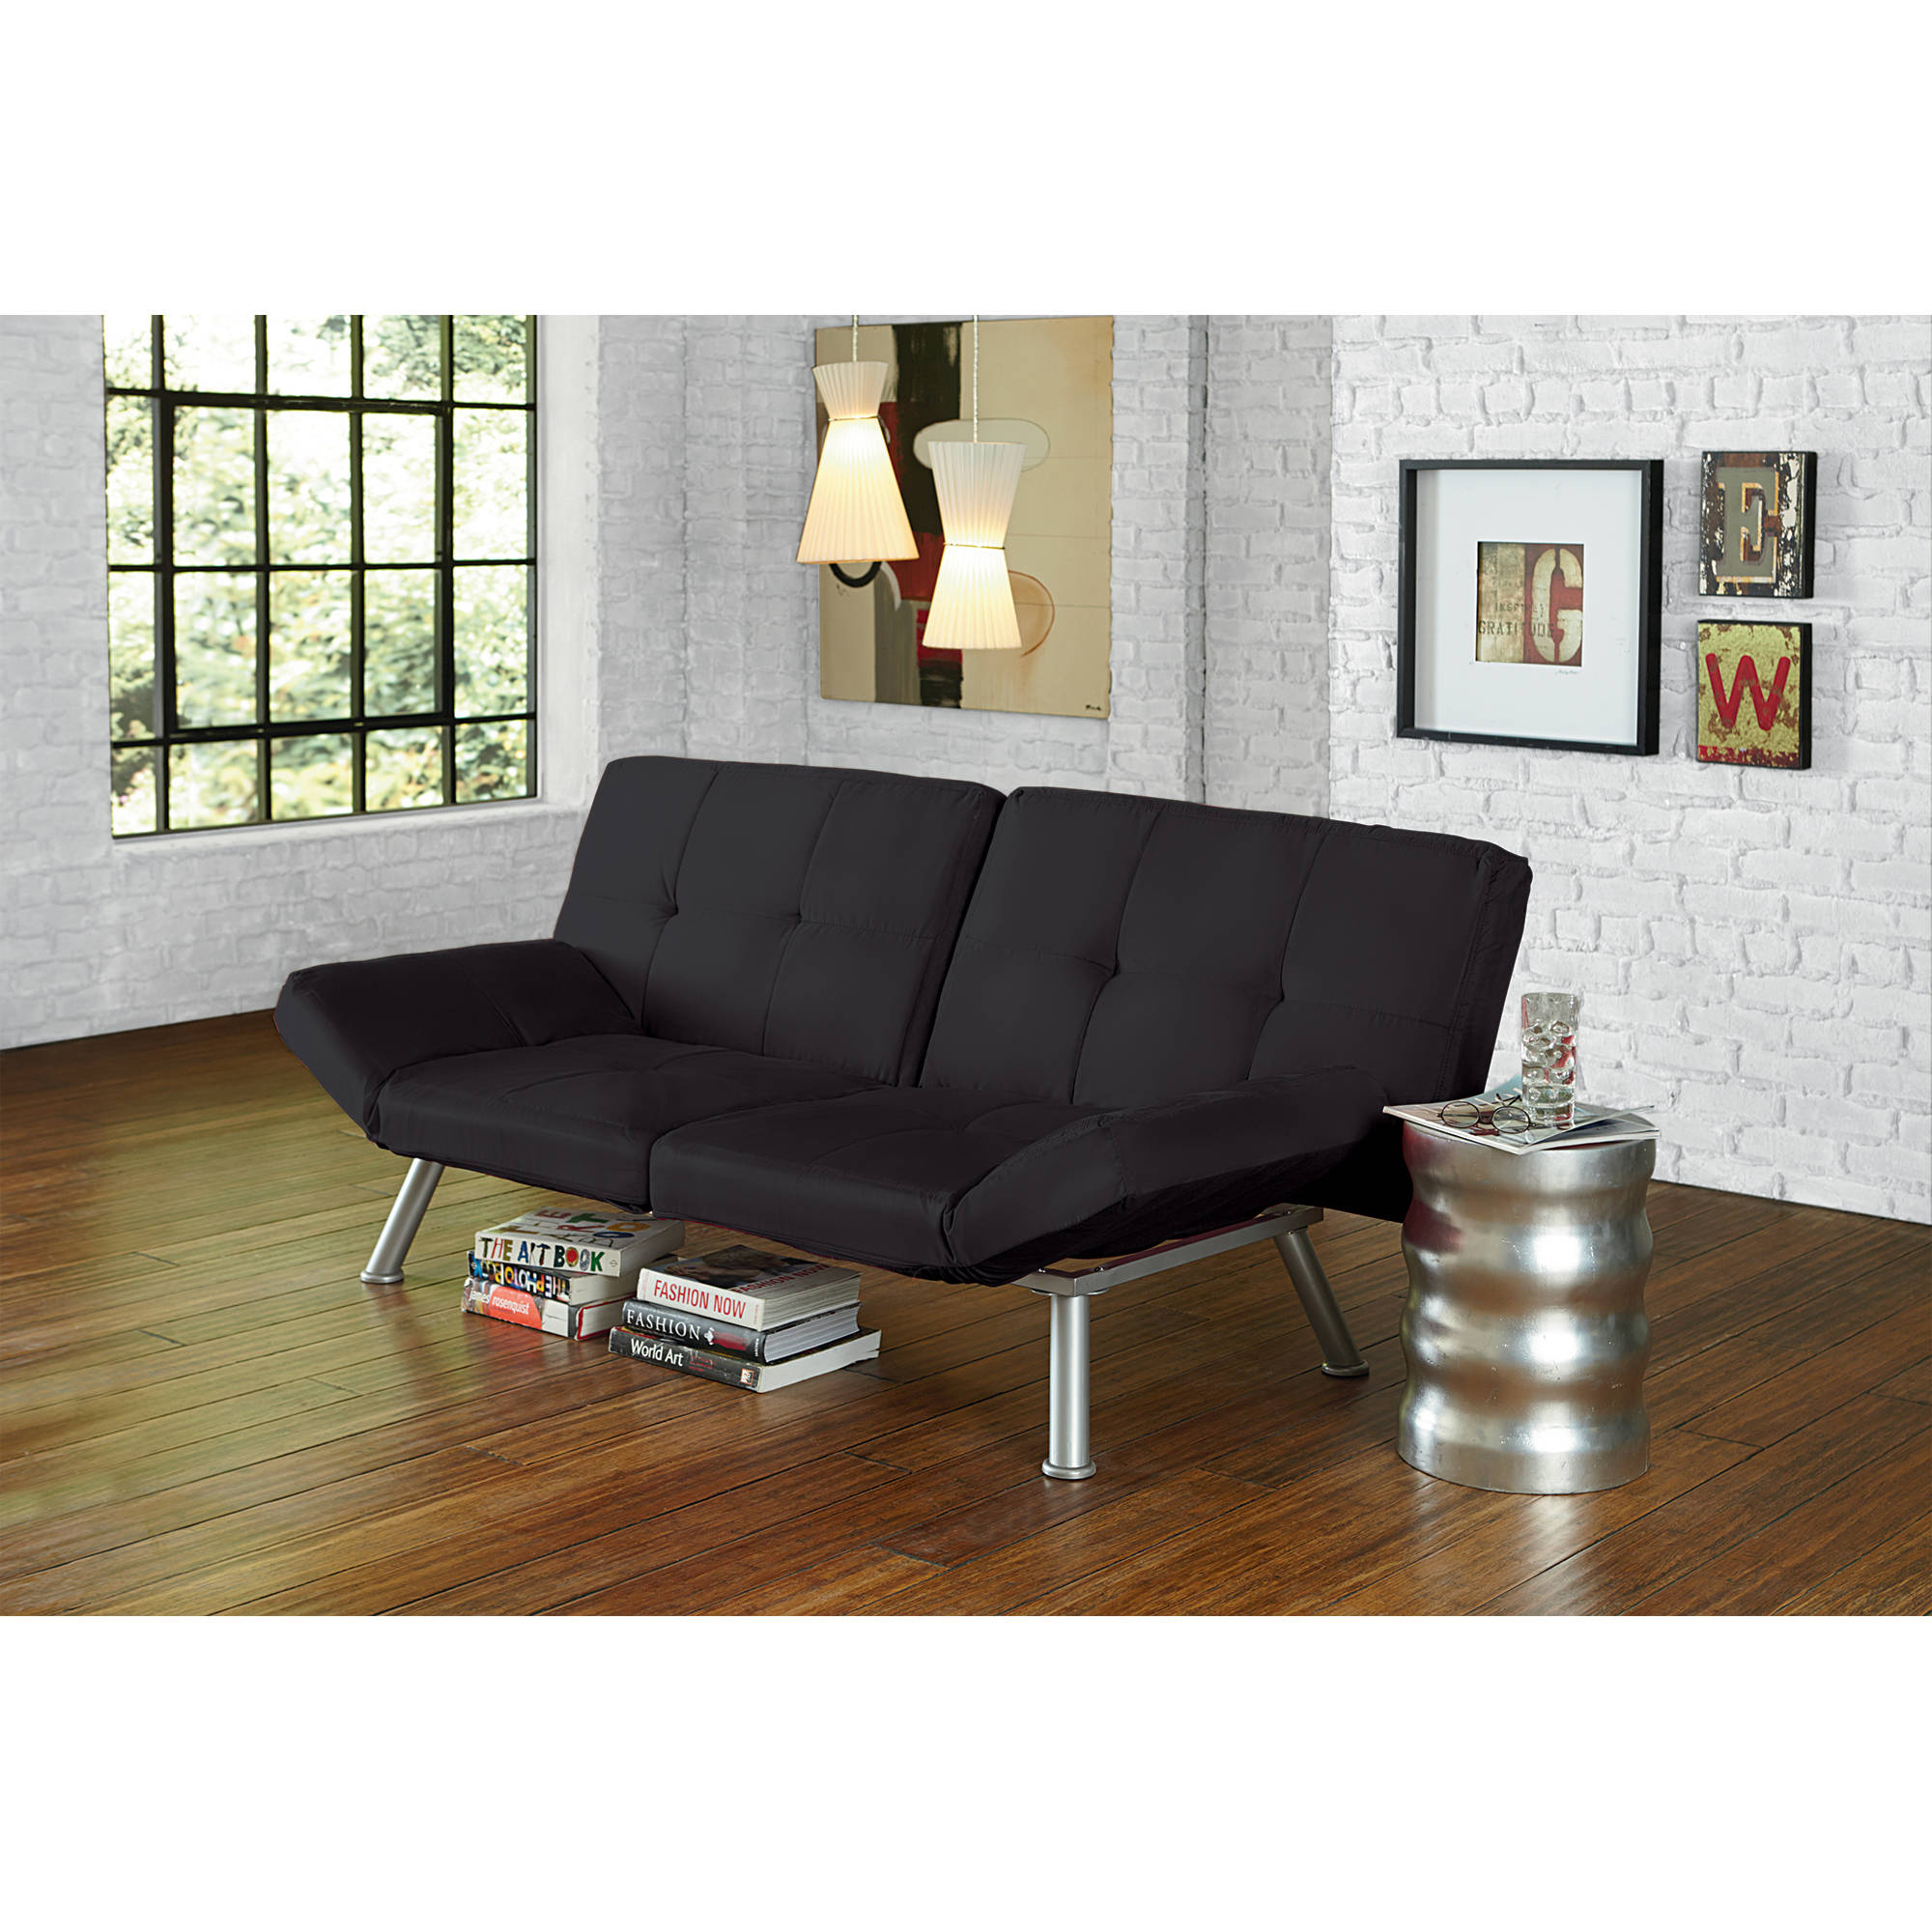 Futon Sofa Couch Tufted Black Finish Bed Contemporary Home Lounge Furniture New